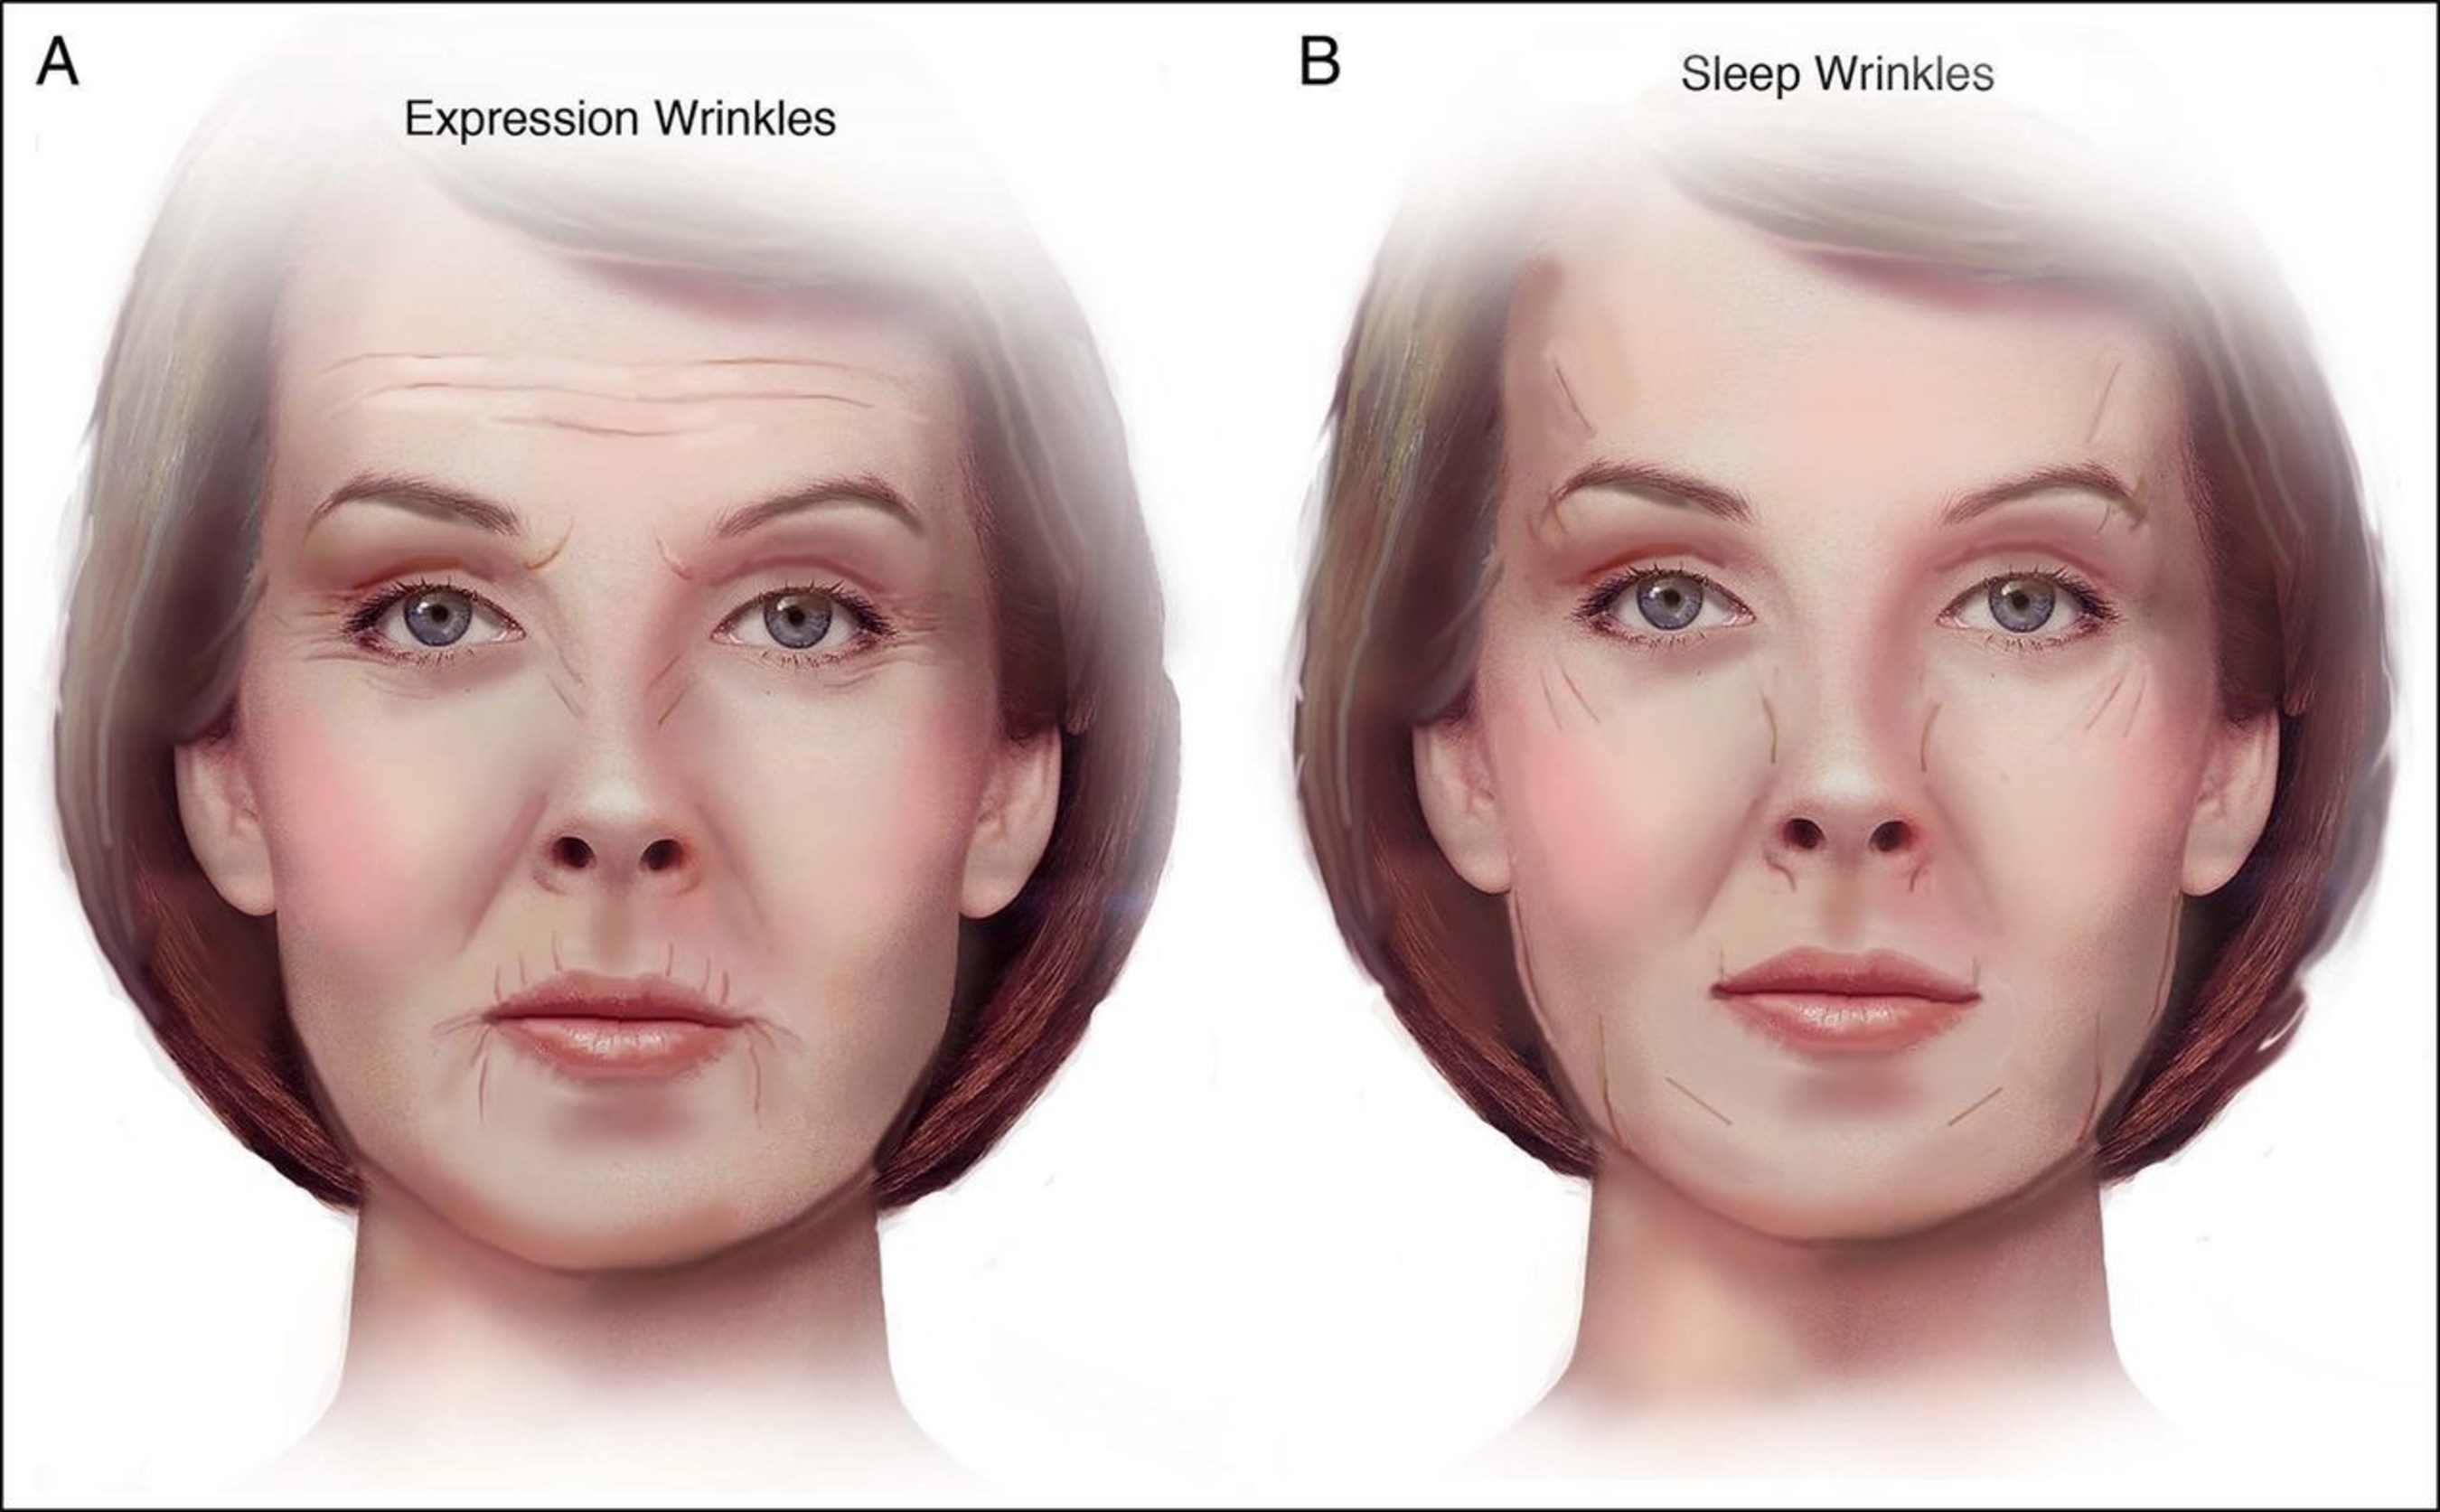 study shows stomach and side sleeping positions cause facial distortion and wrinkles over time